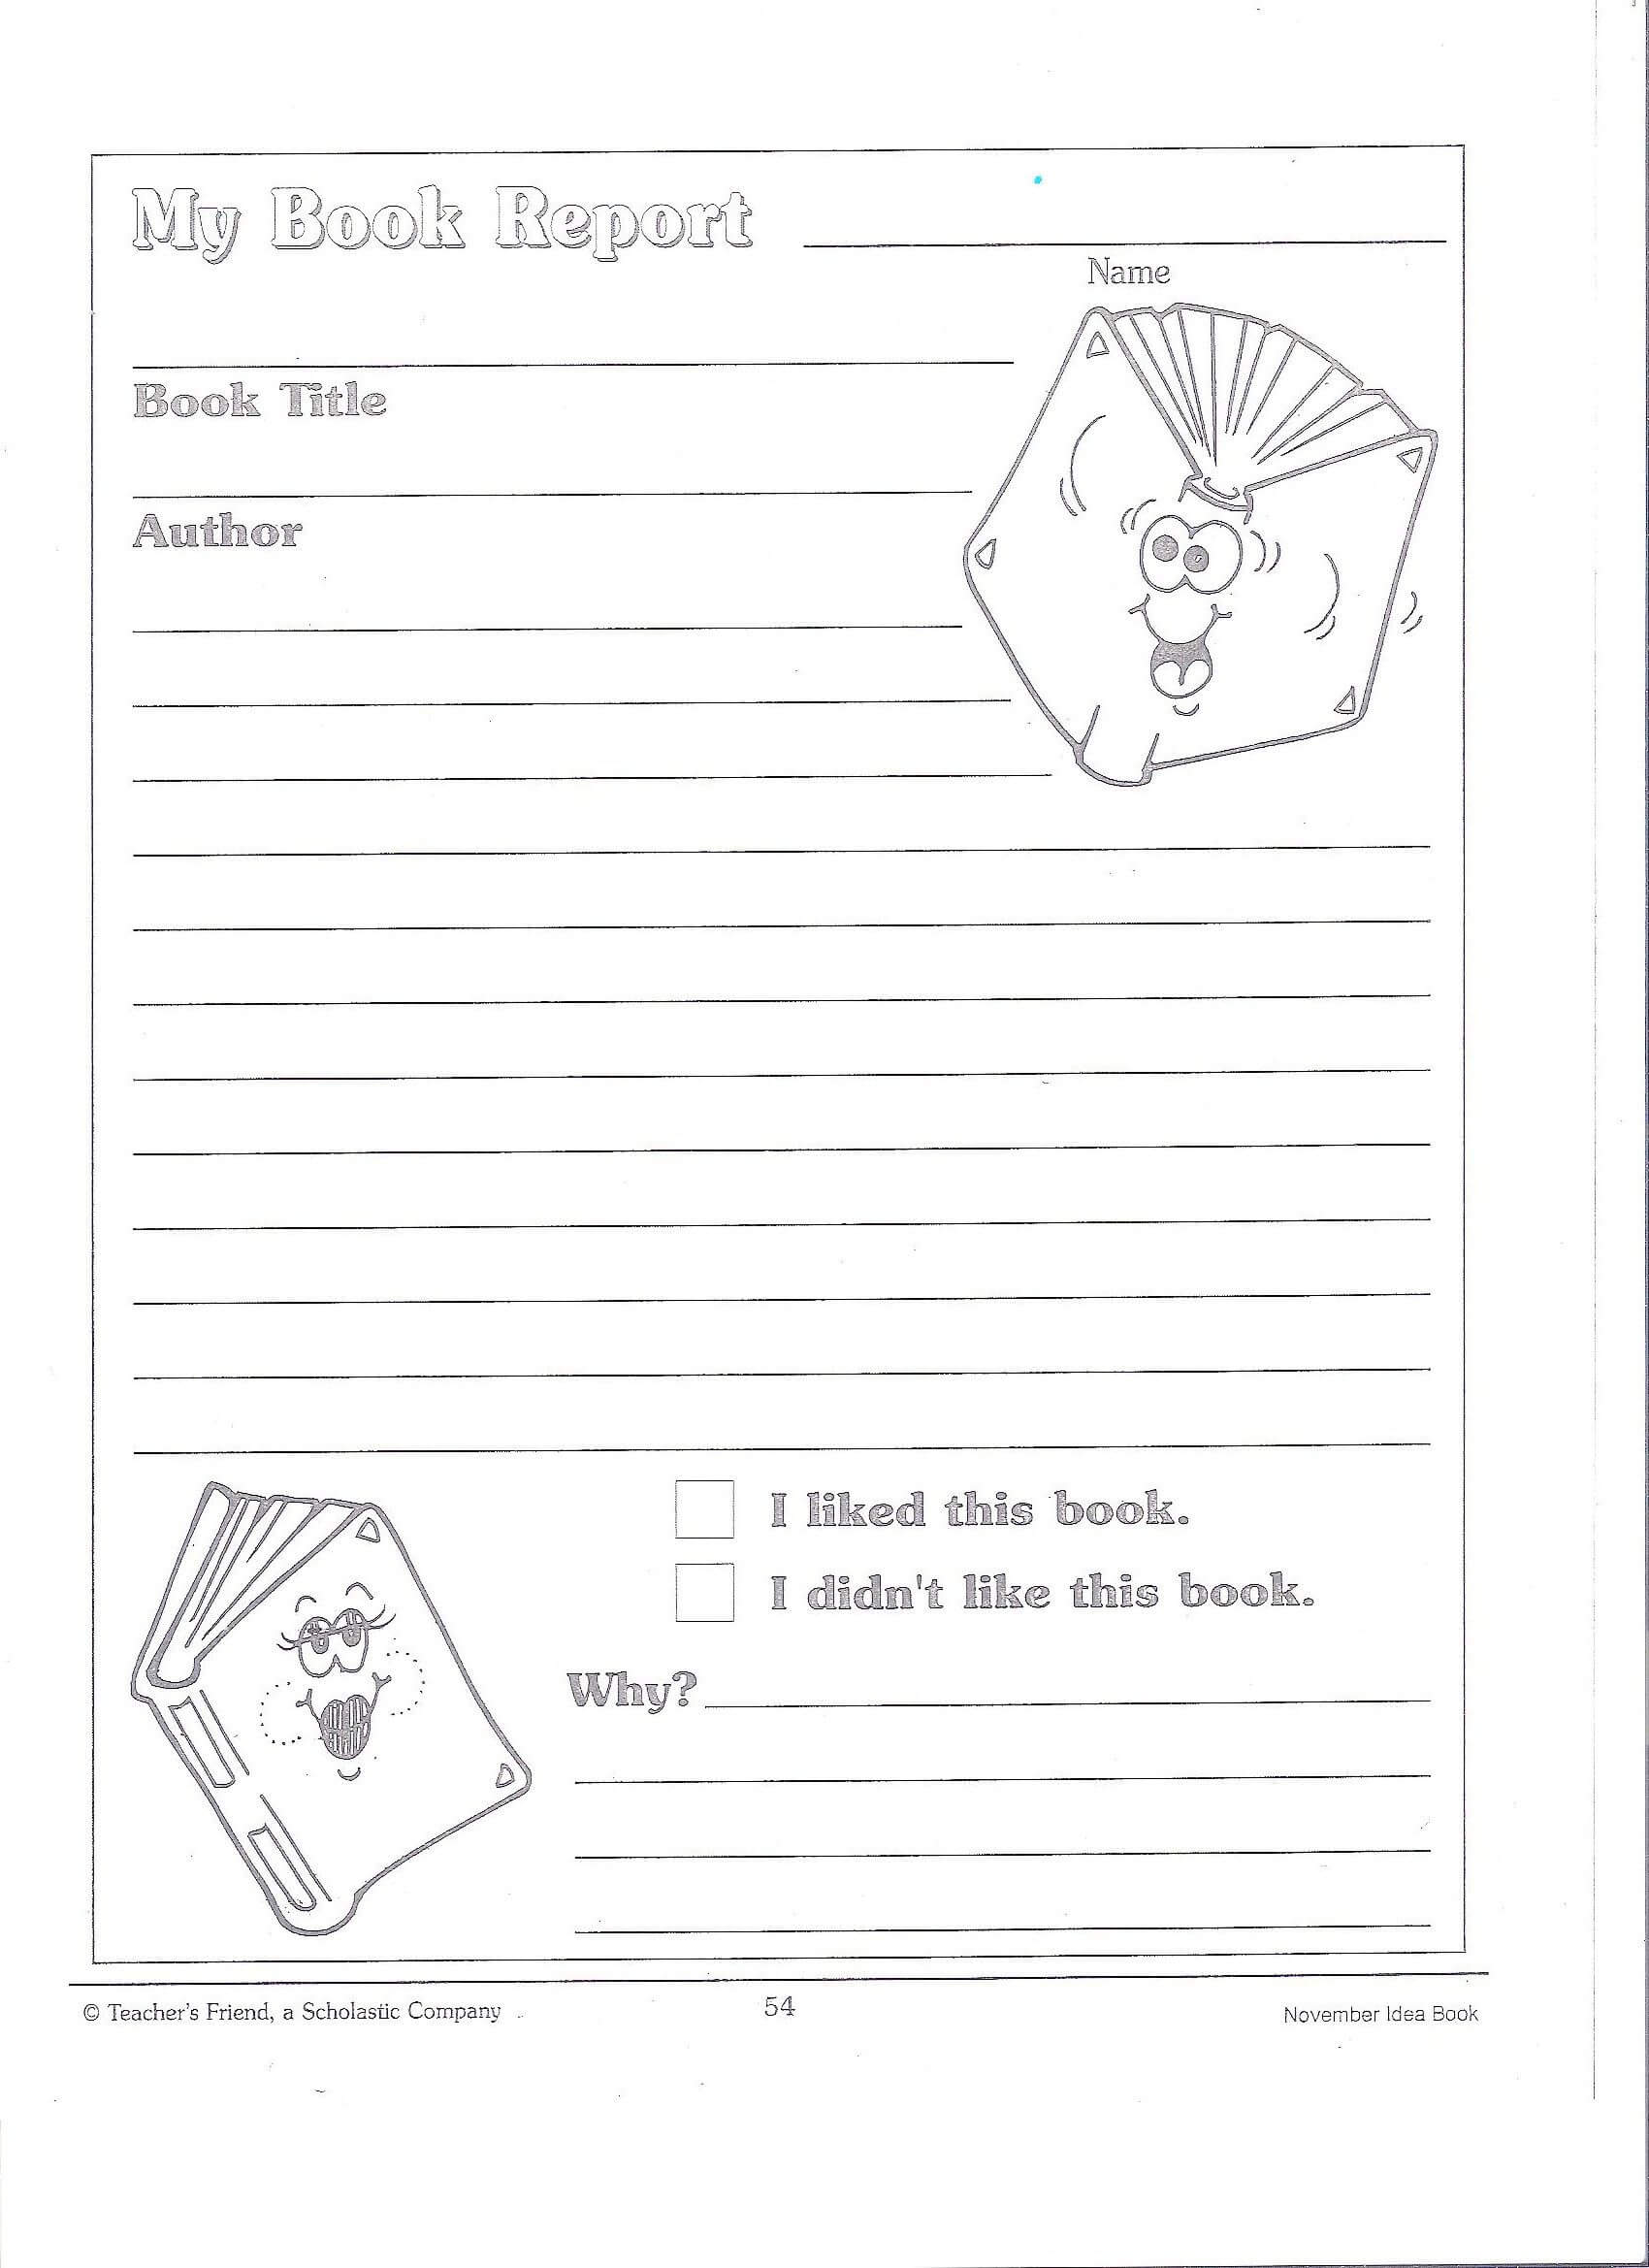 Printable Book Report Forms | Miss Murphy's 1St And 2Nd Intended For 2Nd Grade Book Report Template